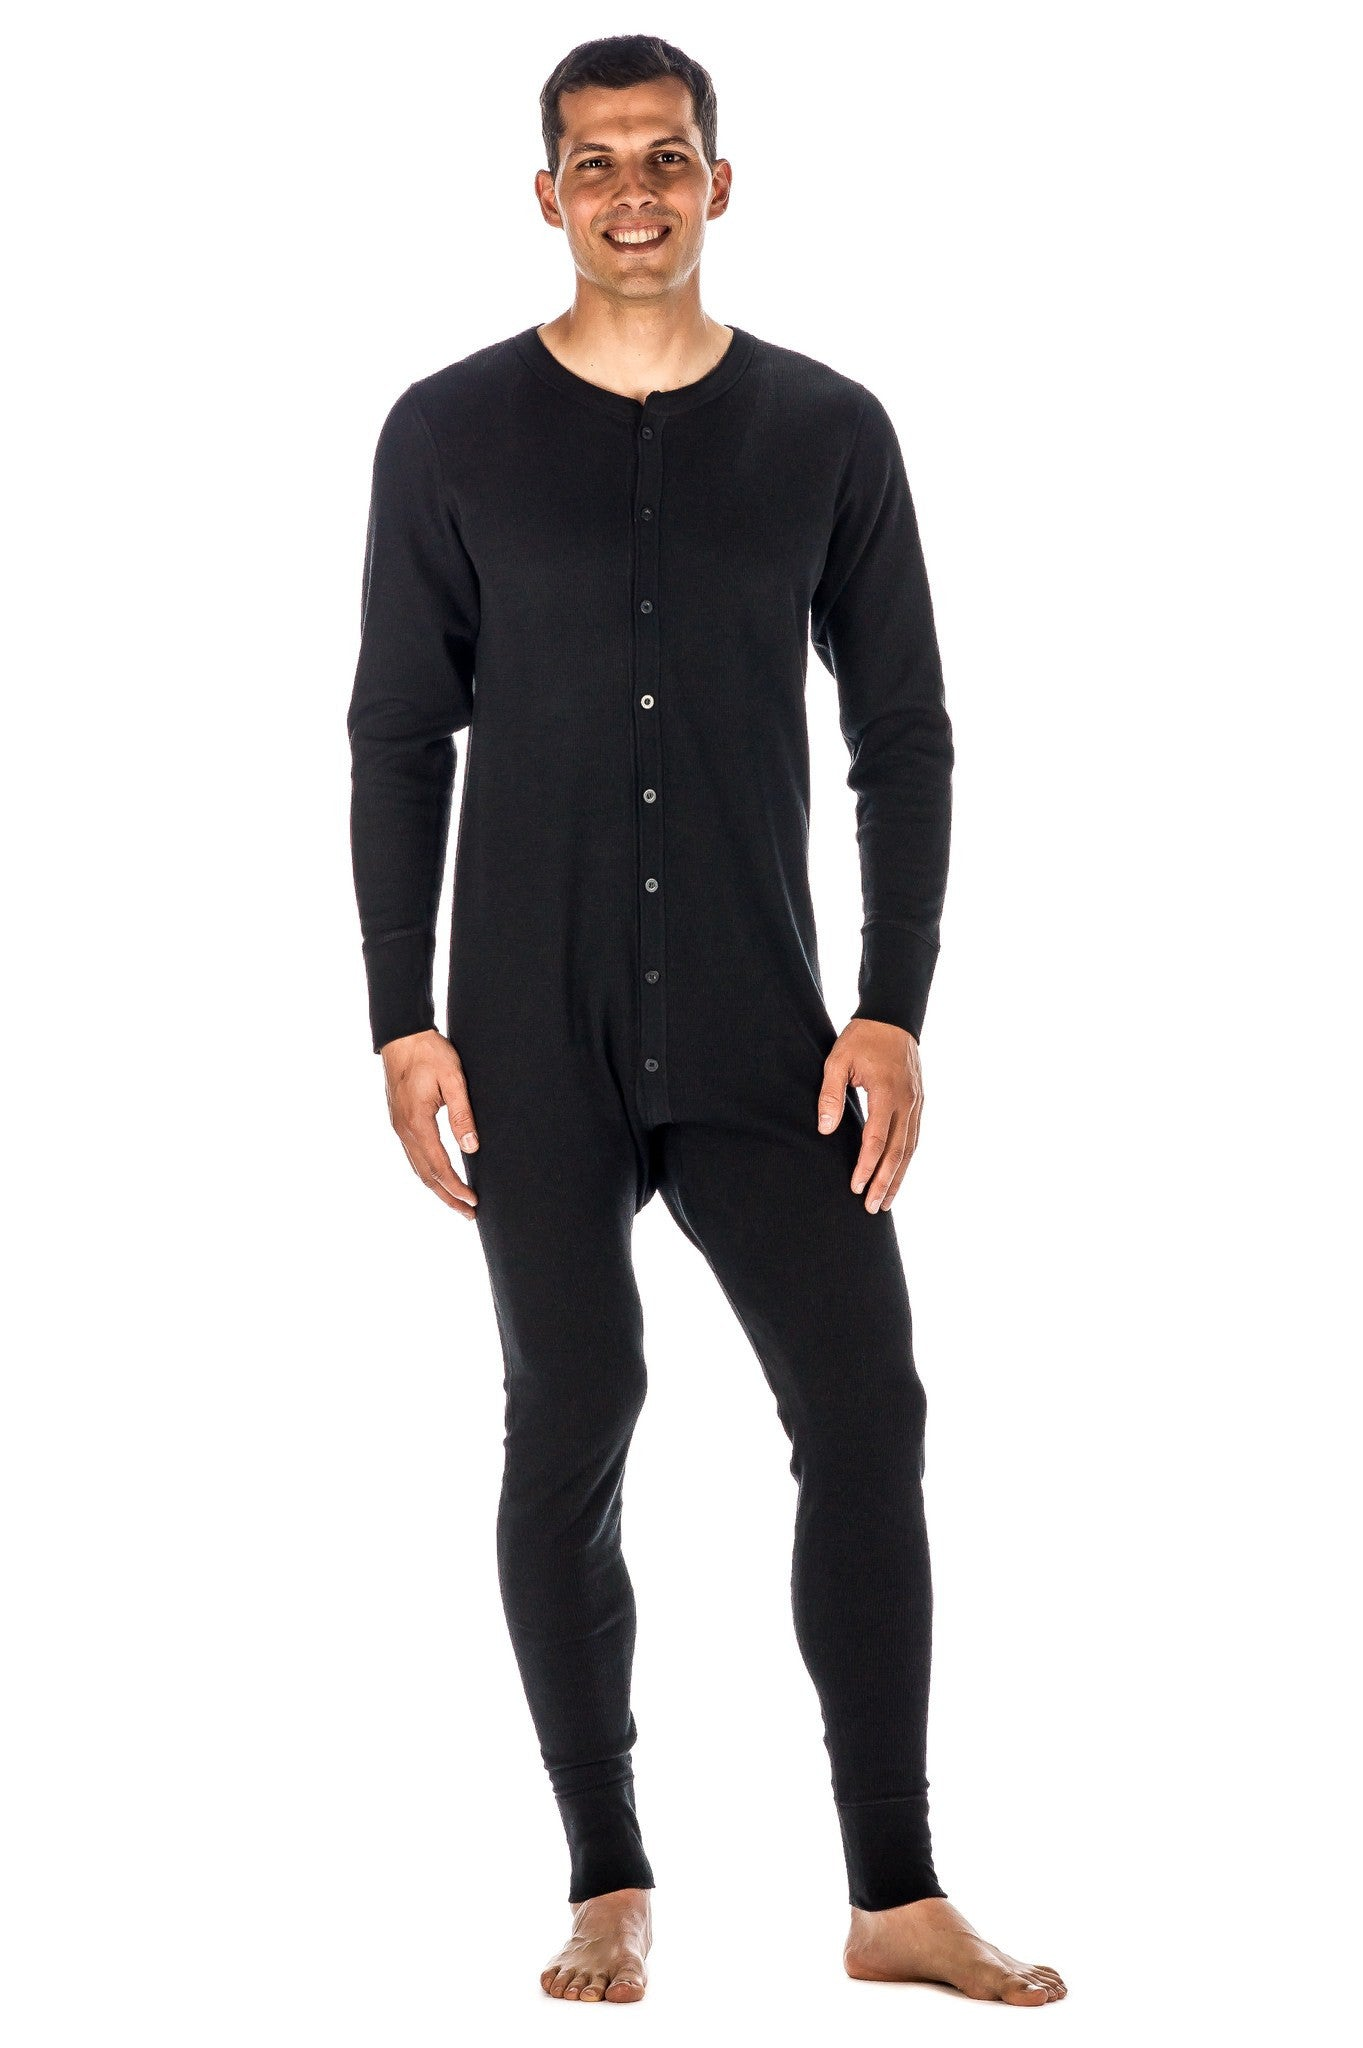 Men's Waffle Knit Thermal Union Suit